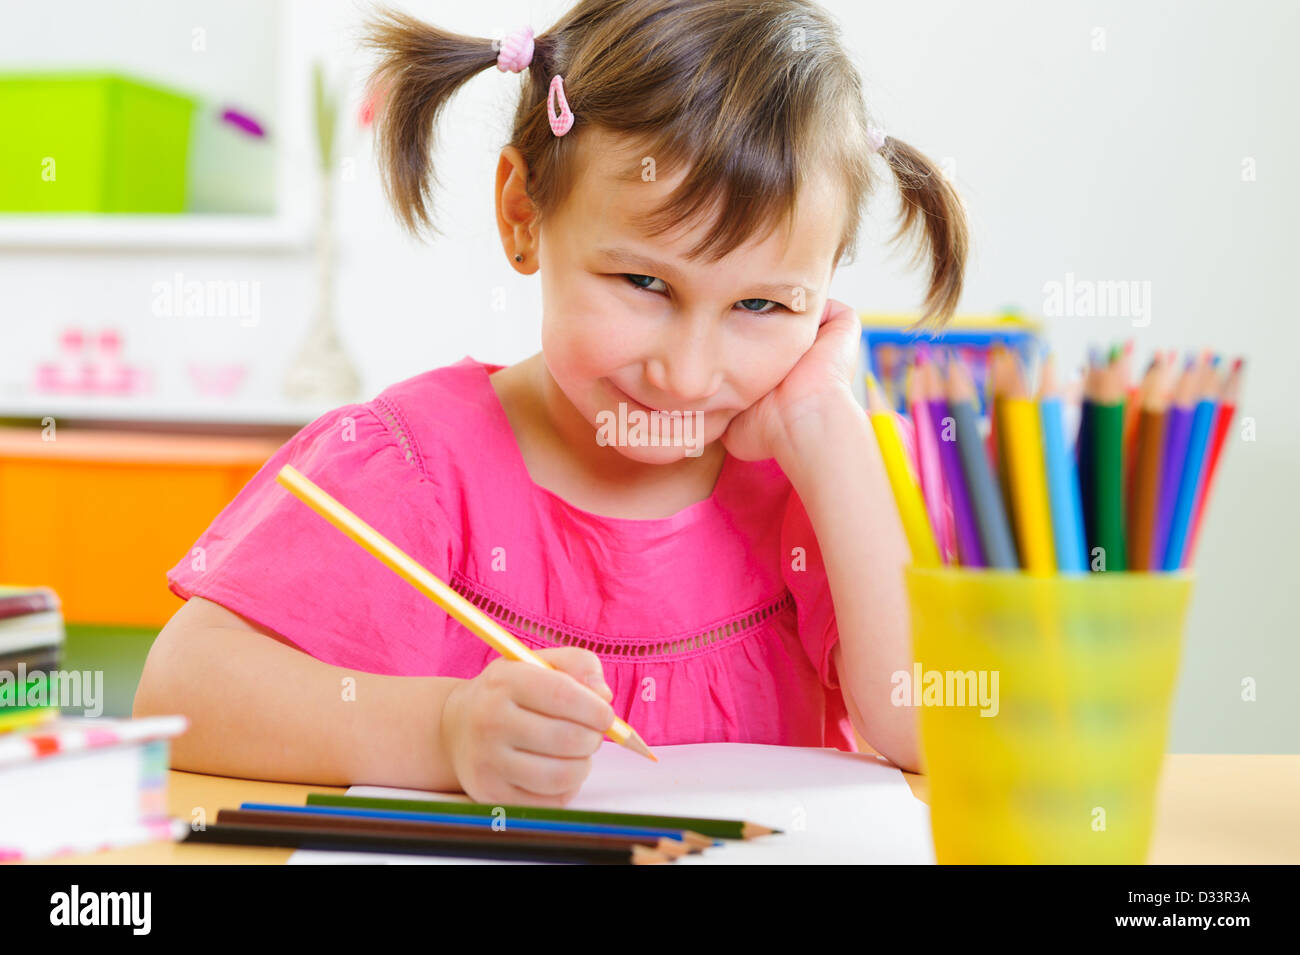 Cute little girl drawing with pencils at home - Stock Image